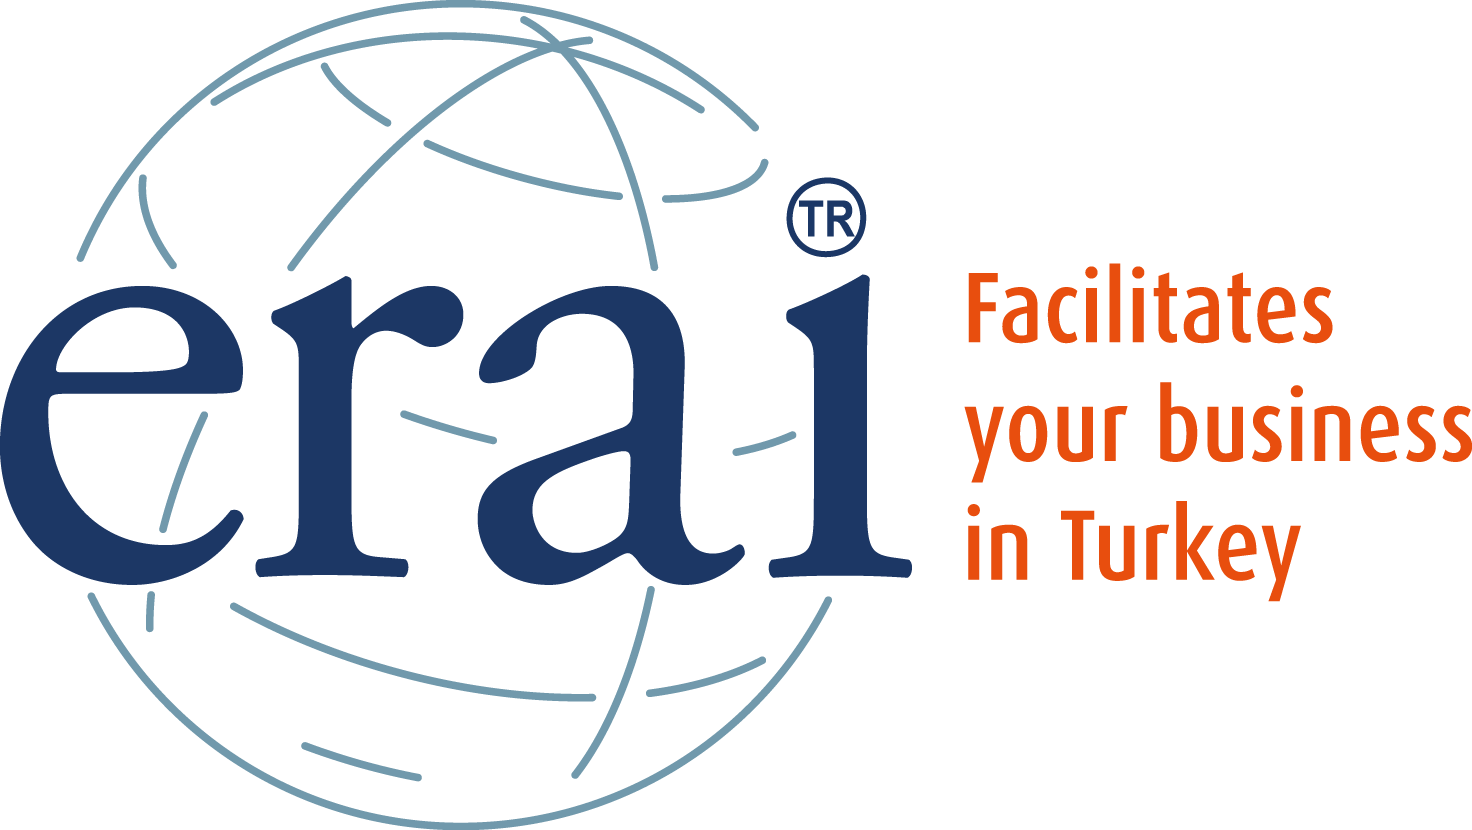 ERAI Turkey, Business Development & Management